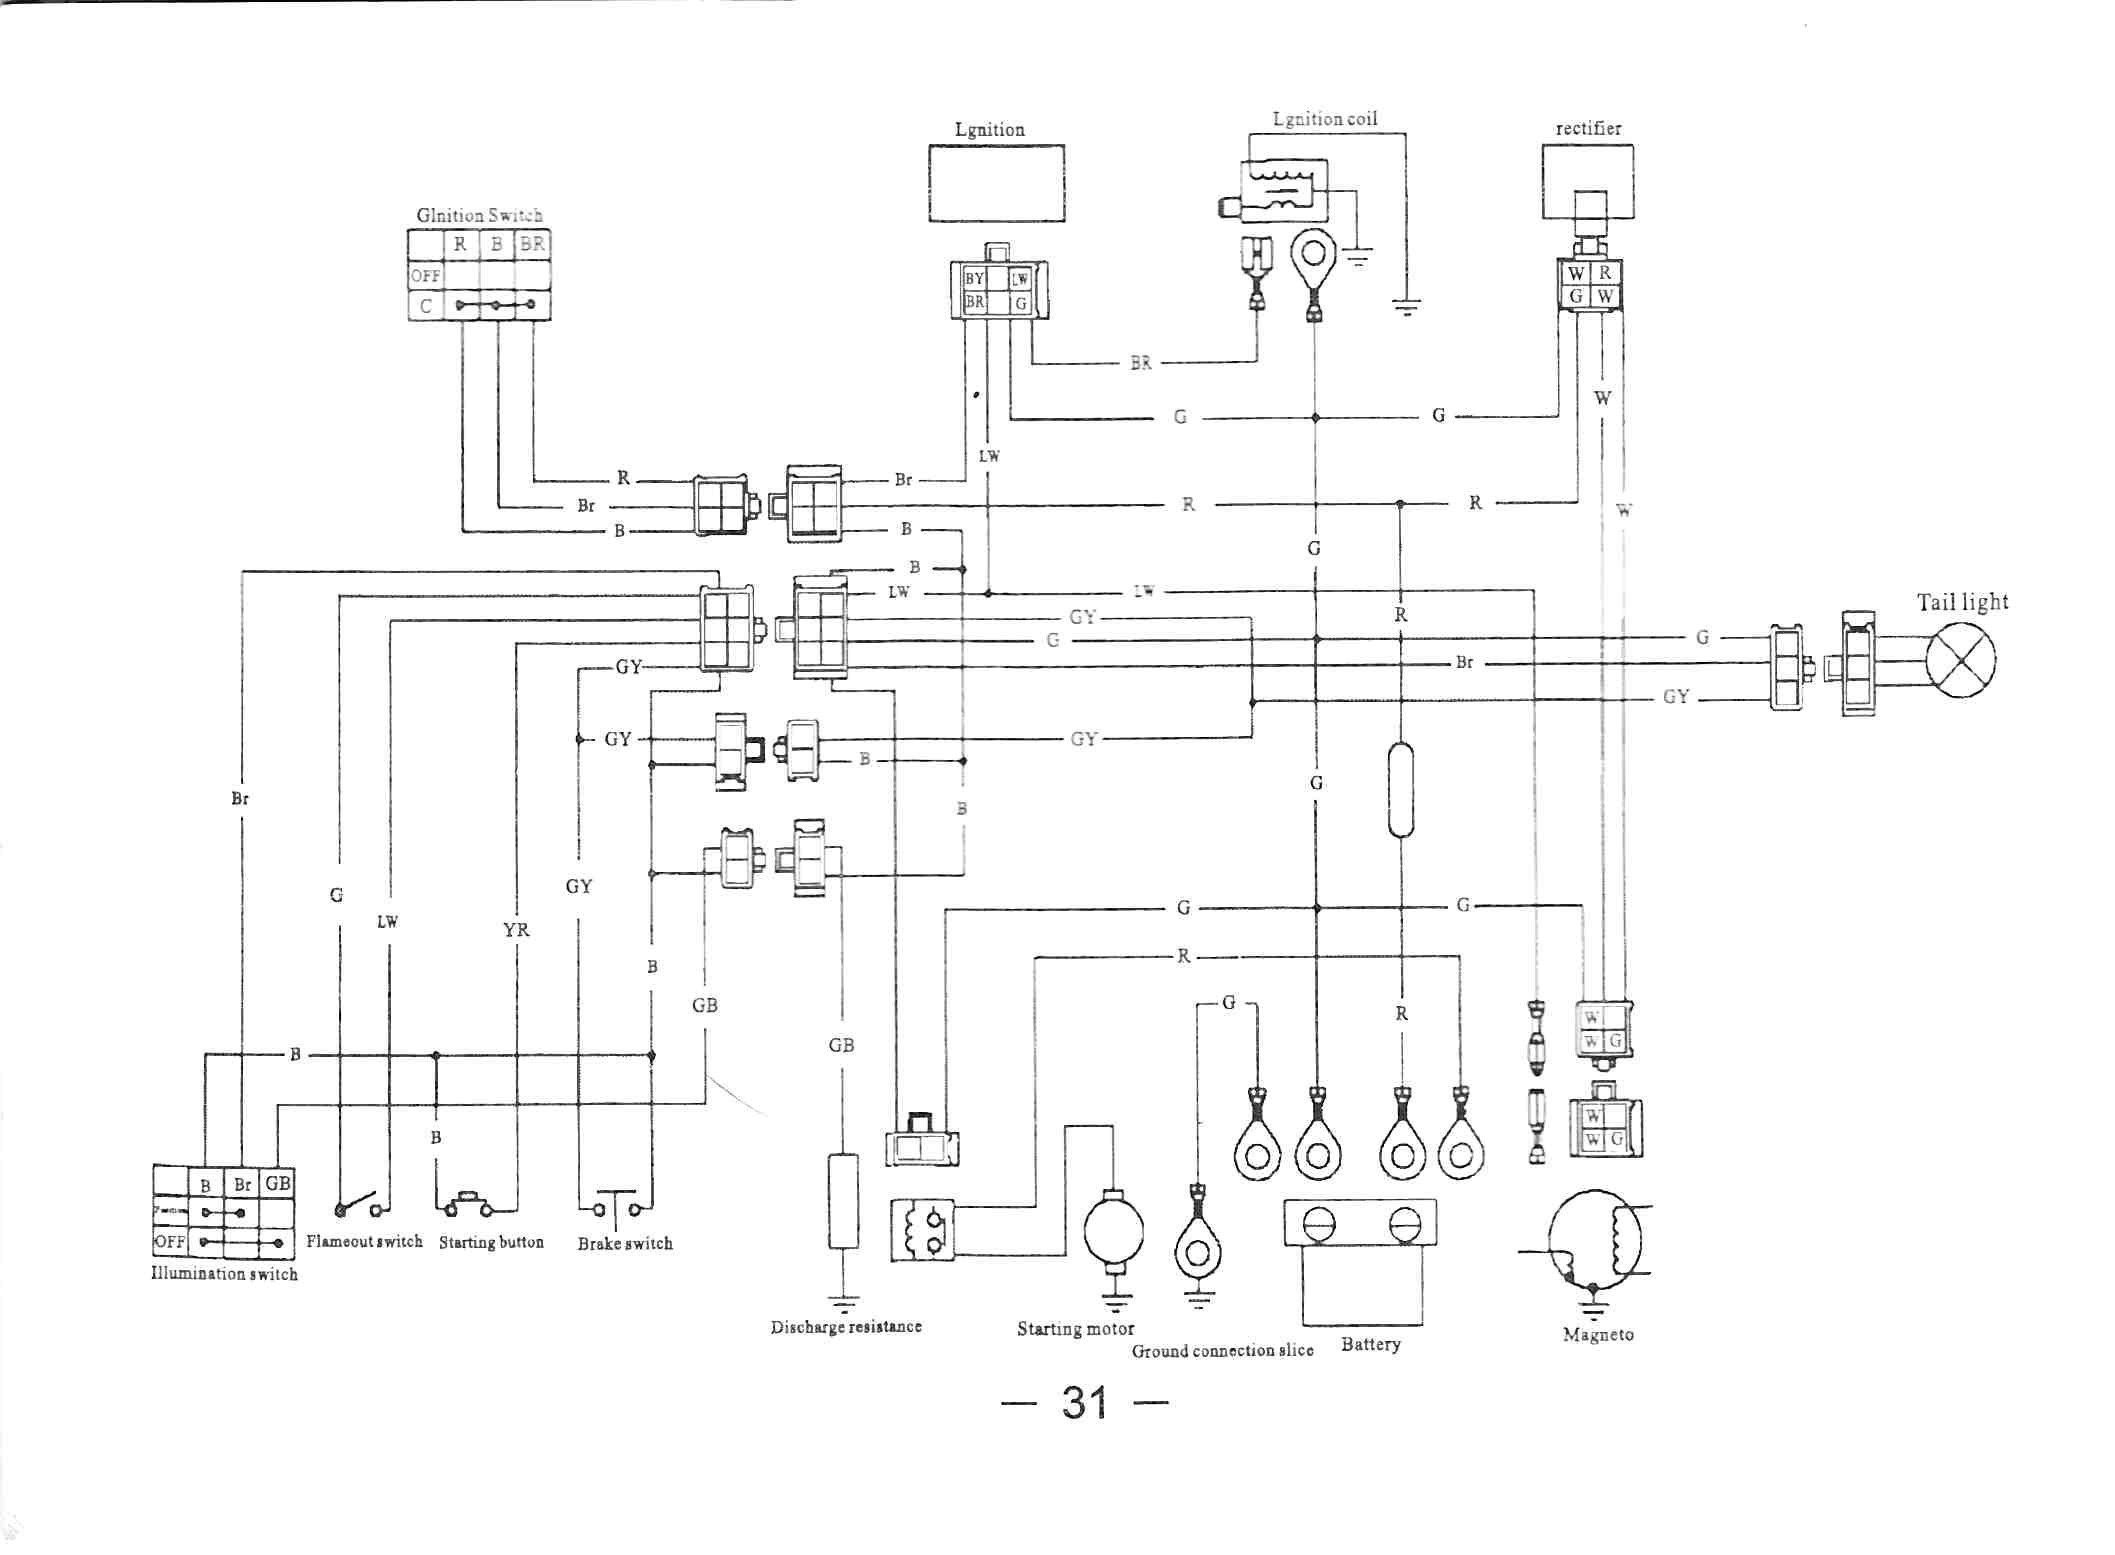 Coolster Cc Atv Wiring Diagram Wiring Diagram For Cc Wheeler Beautiful Yamaha Atv Wiring Diagram Yamaha Banshee Wiring H together with Coolster Cc Atv Wiring Diagram Diagram Likewise Chinese Atv Wiring Diagrams On Coolster Atv Cc Rh Gistnote Co A besides Full Electrics Wiring Harness Cdi Ignition Coil Spark Plug Cc Cc Cc Cc Atv Quad Bike Buggy Gokart furthermore Autd as well . on chinese cdi 125 wiring diagram